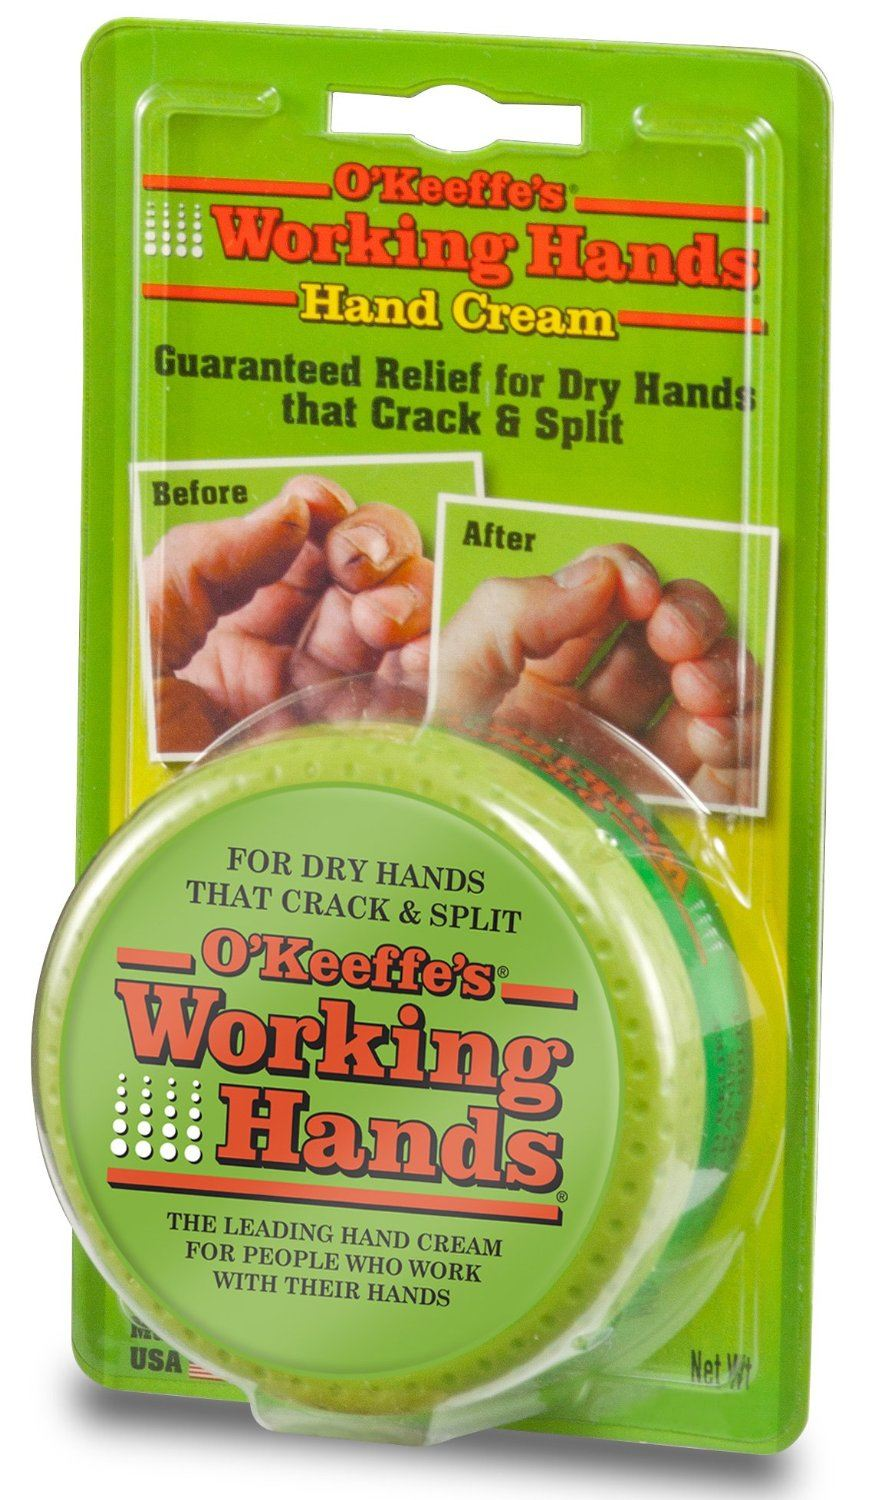 O'Keeffe's 96g Working Hands Hand Cream